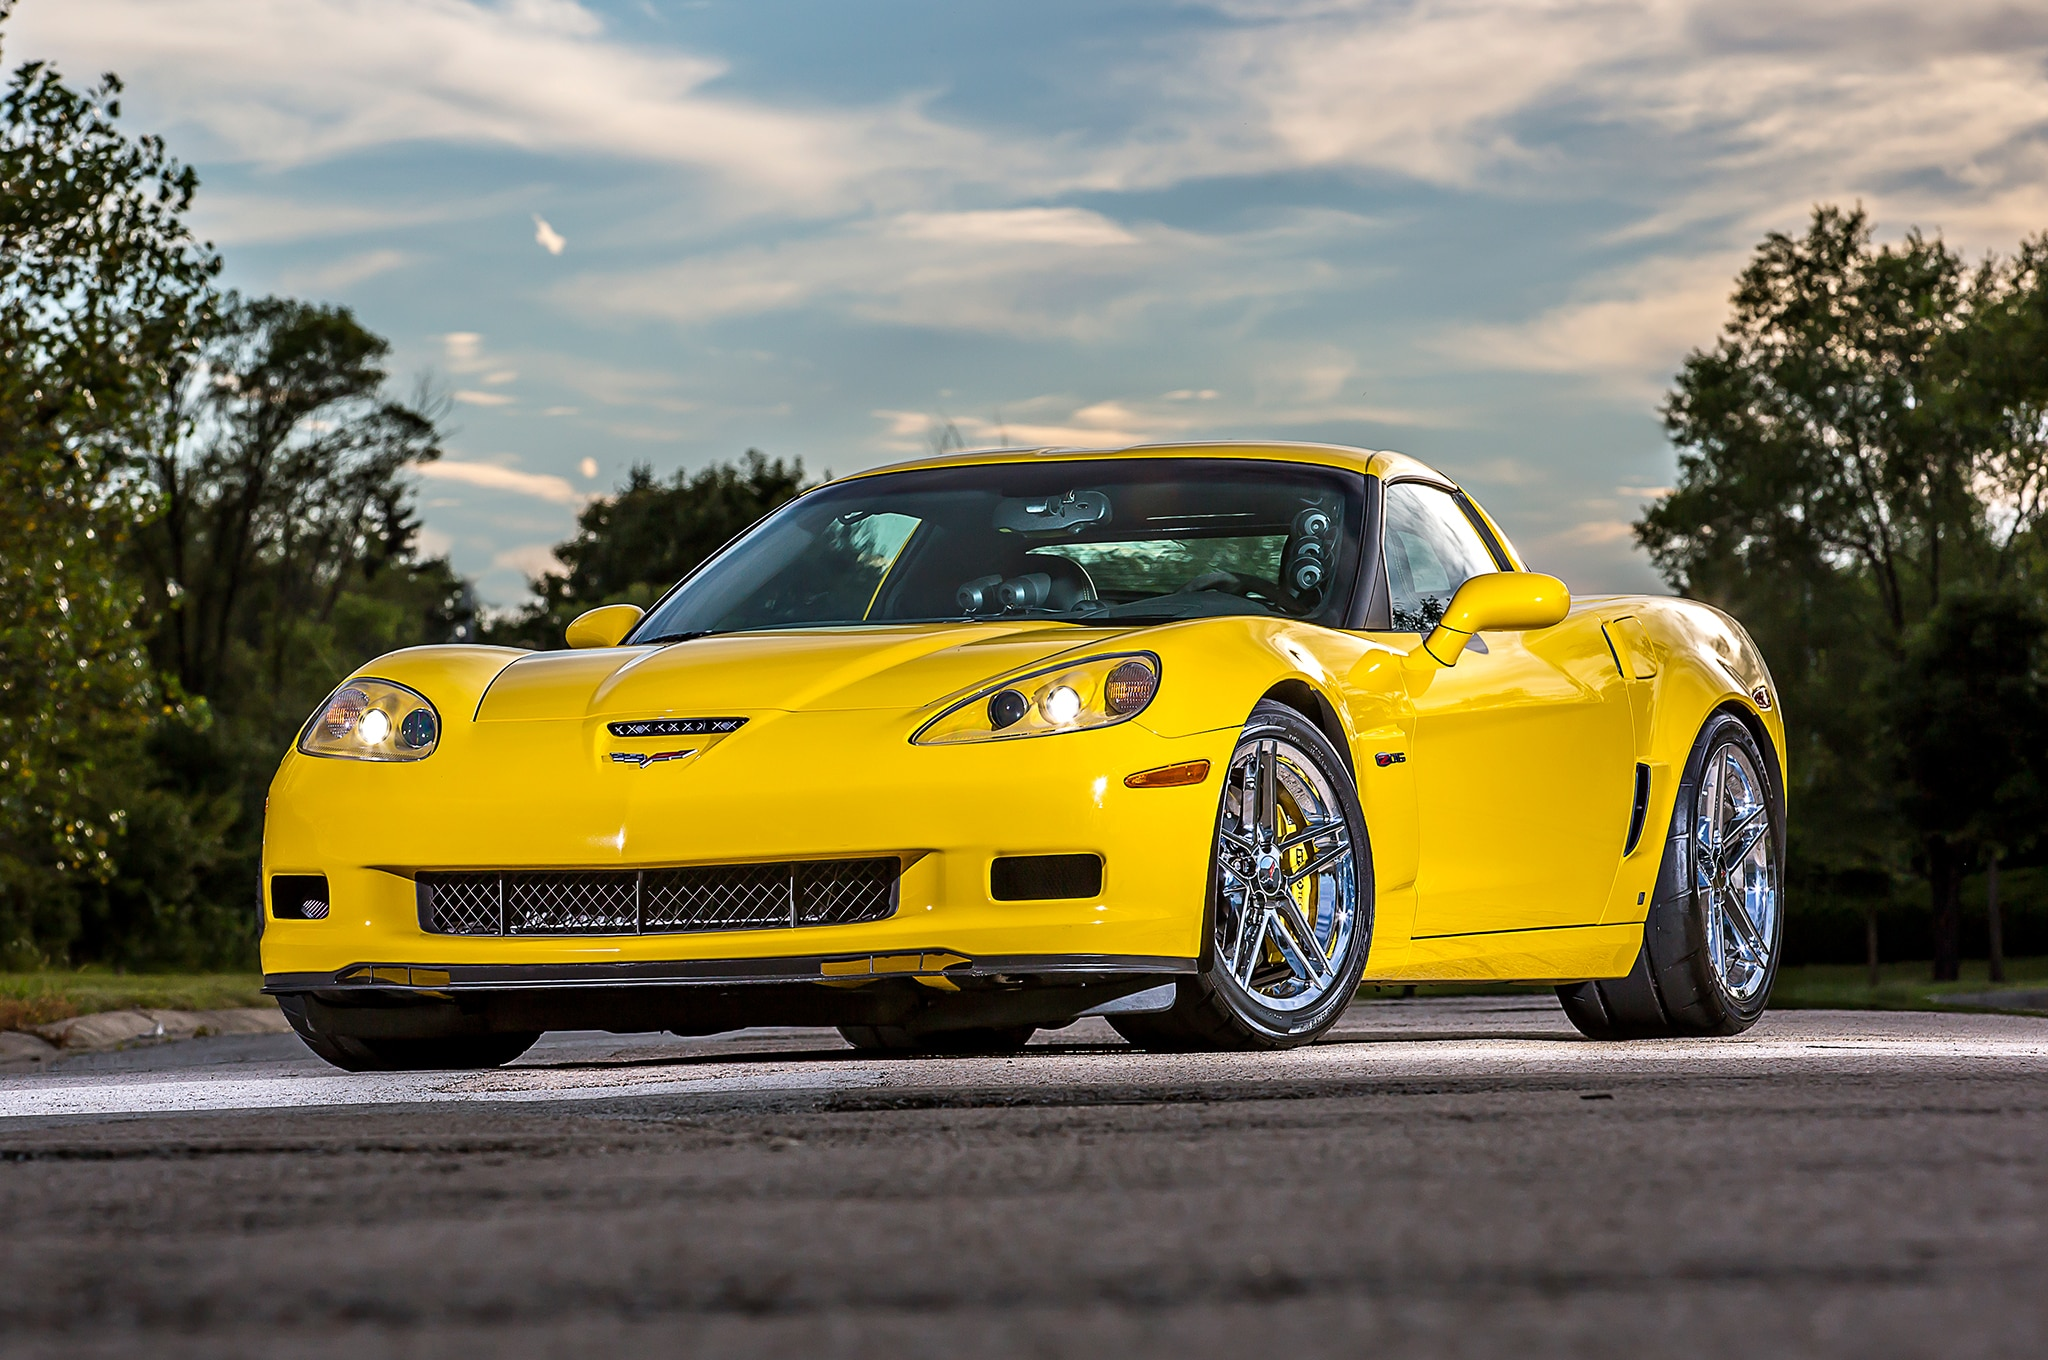 Desert Fox: Building a 1,370-HP 2007 Chevrolet Corvette Z06